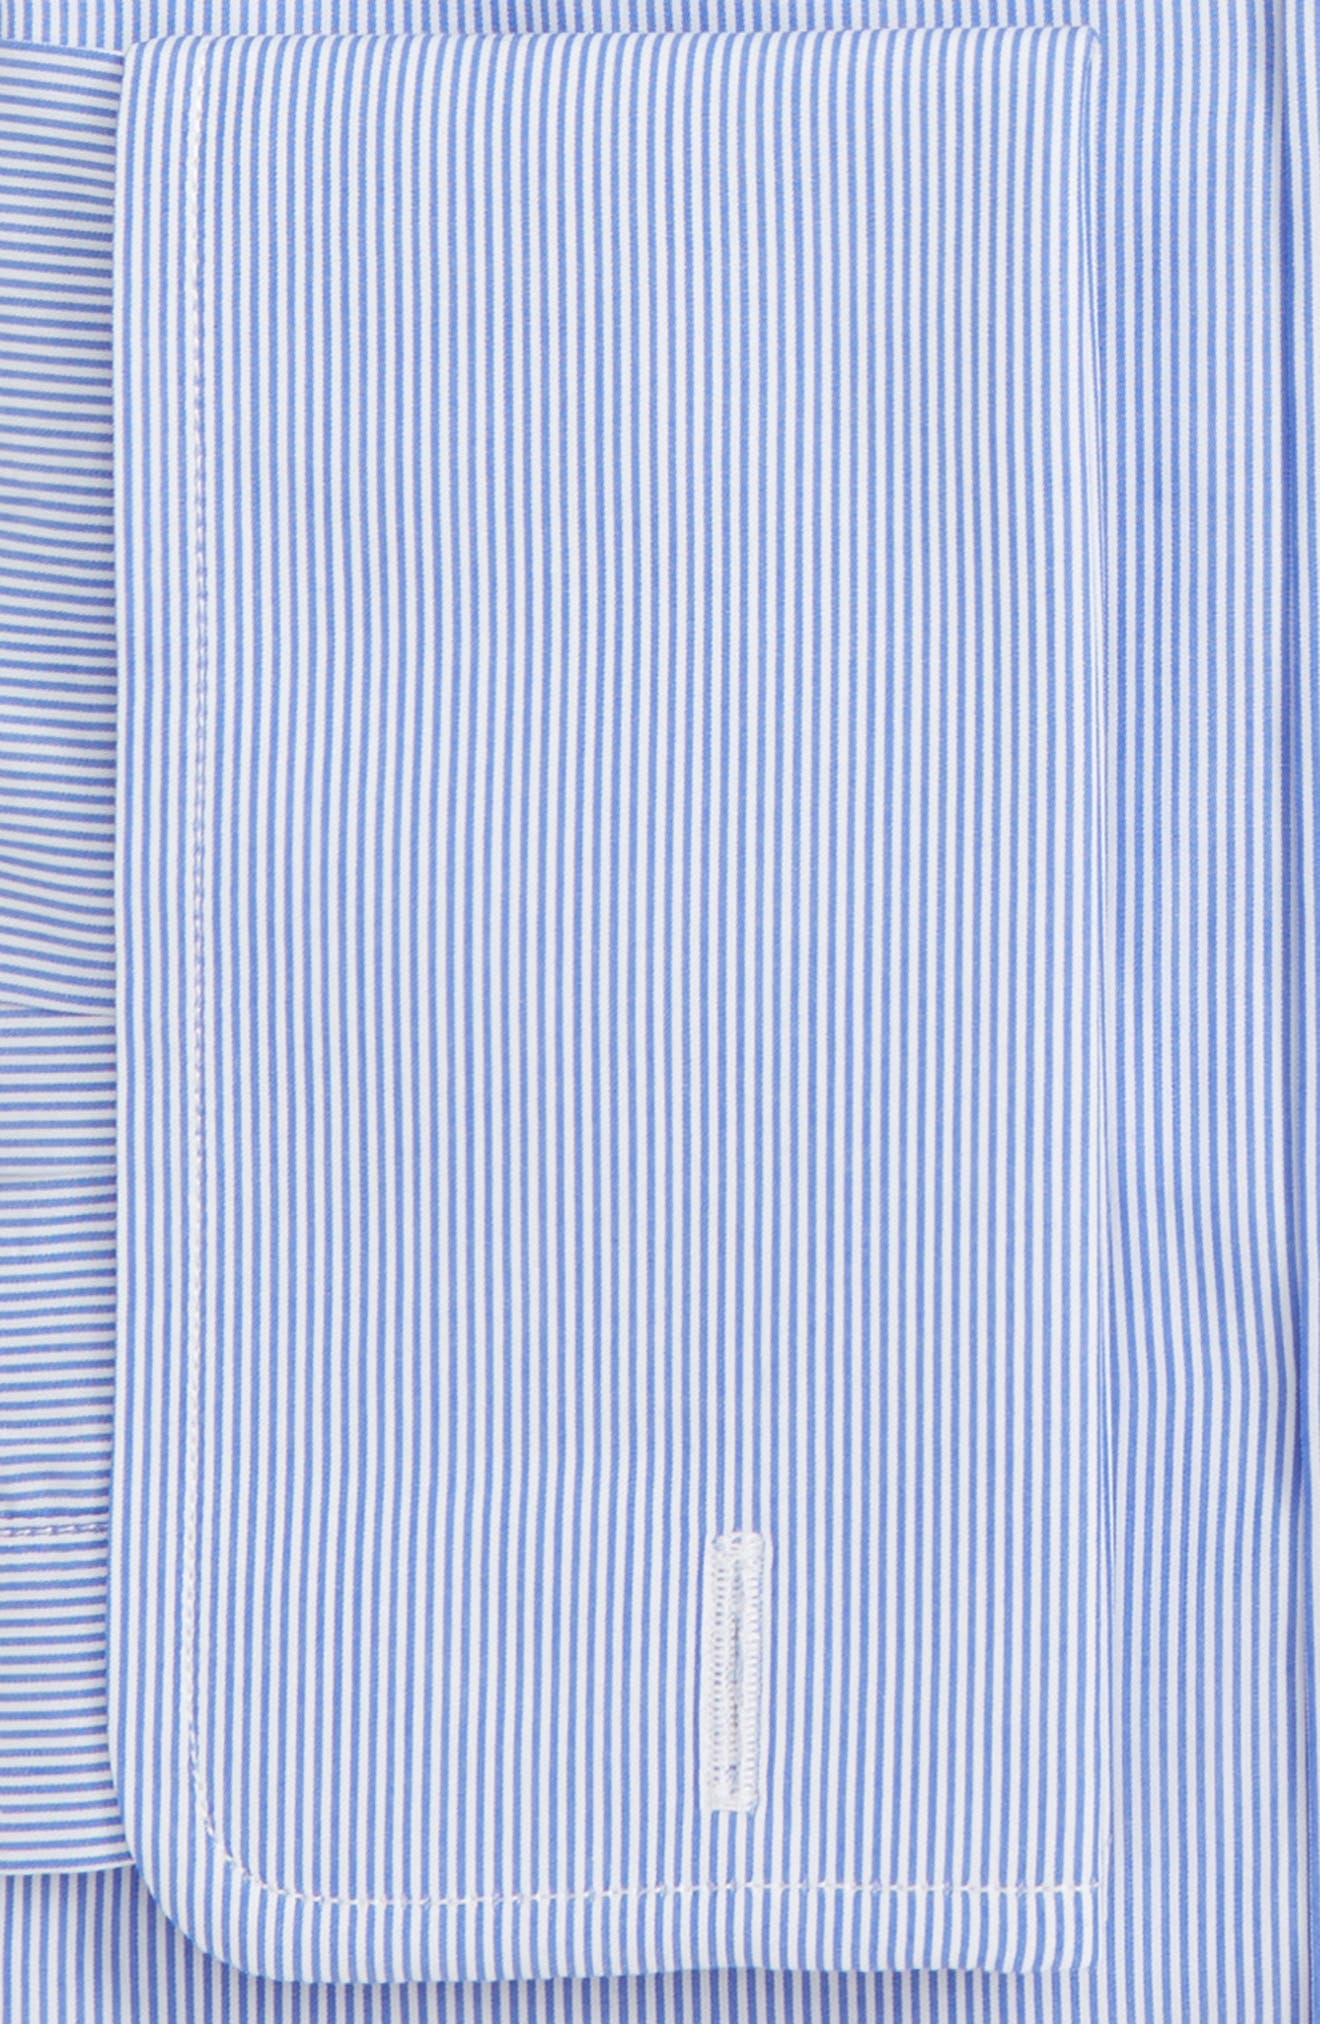 Trim Fit Stripe Dress Shirt,                             Alternate thumbnail 2, color,                             WHITE/ BLUE